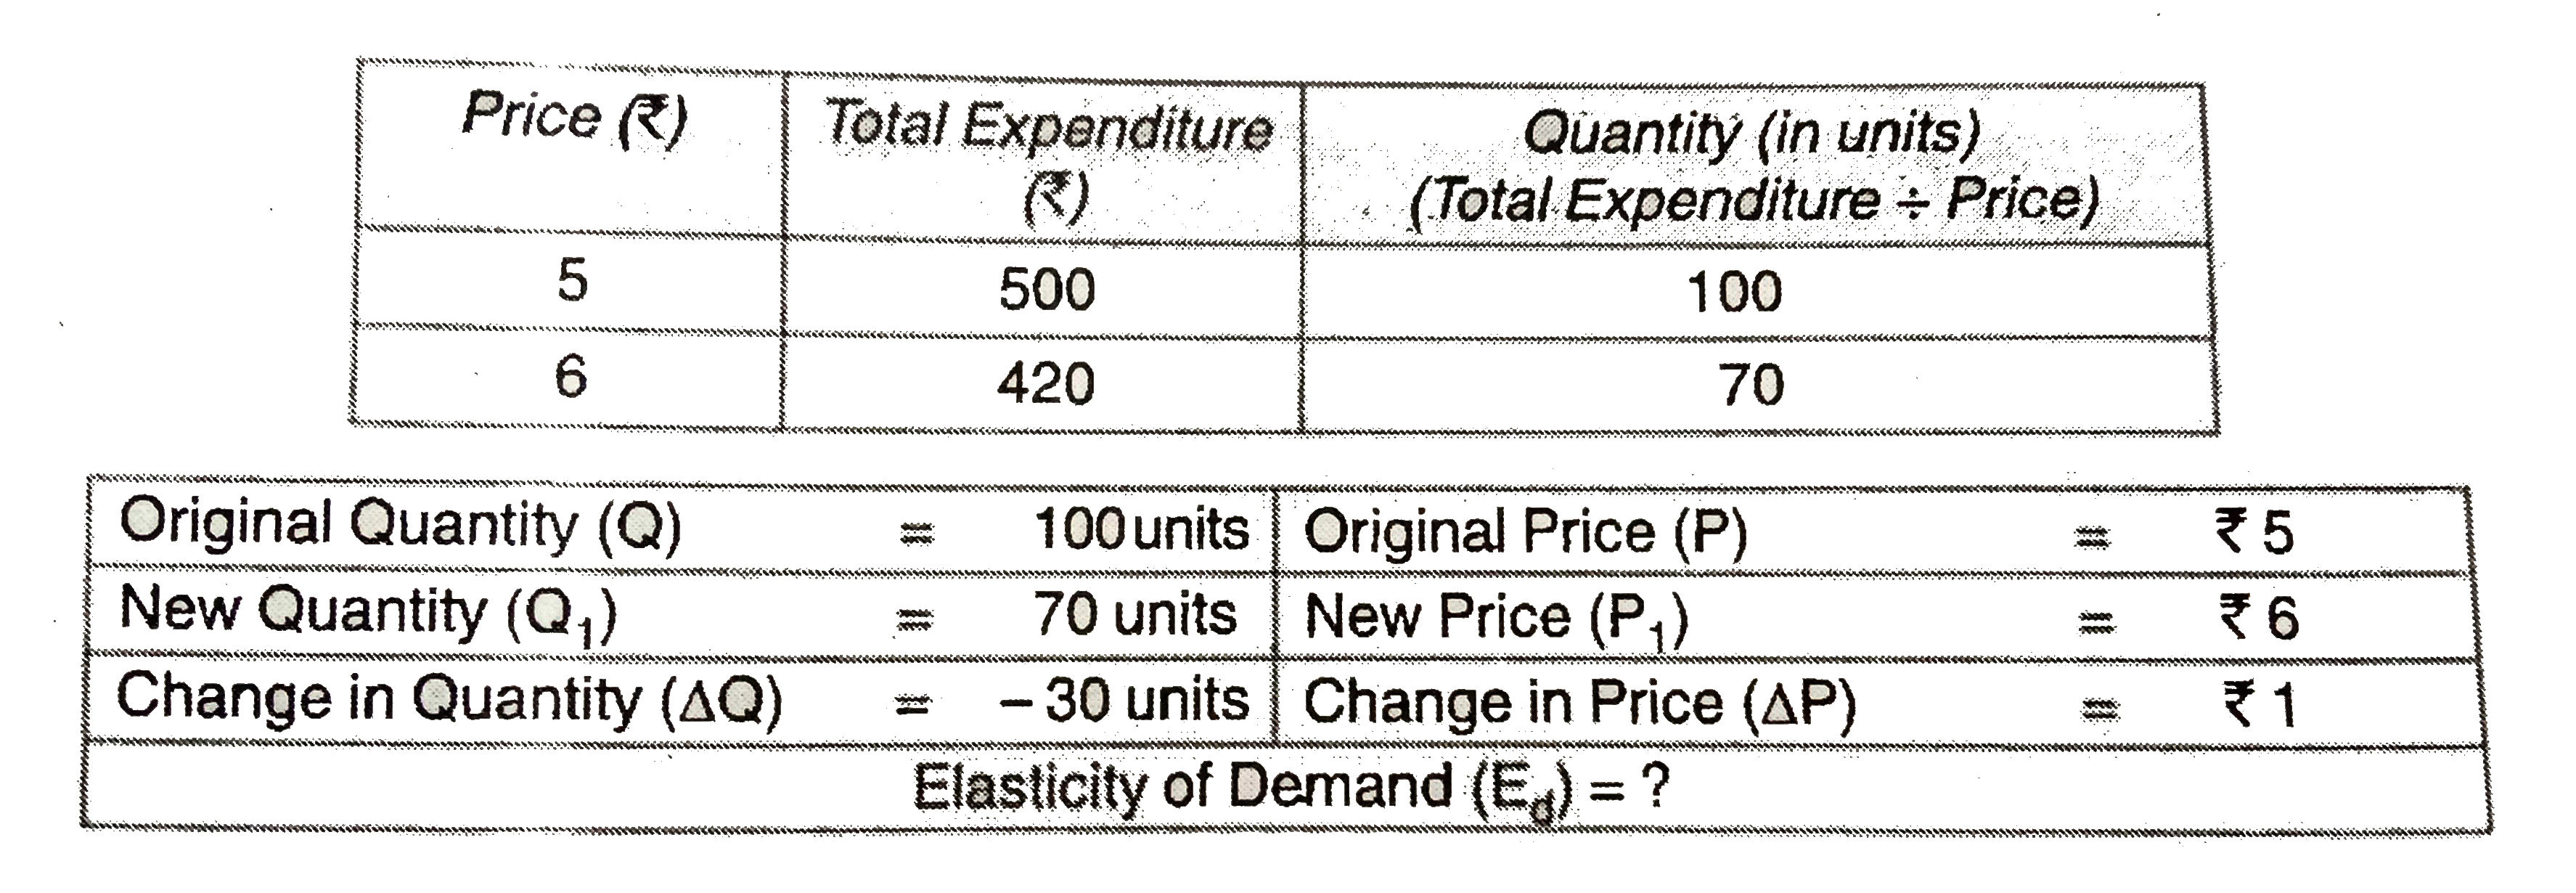 Calculate Price Elasticity Of Demand Br Img Src Https D10